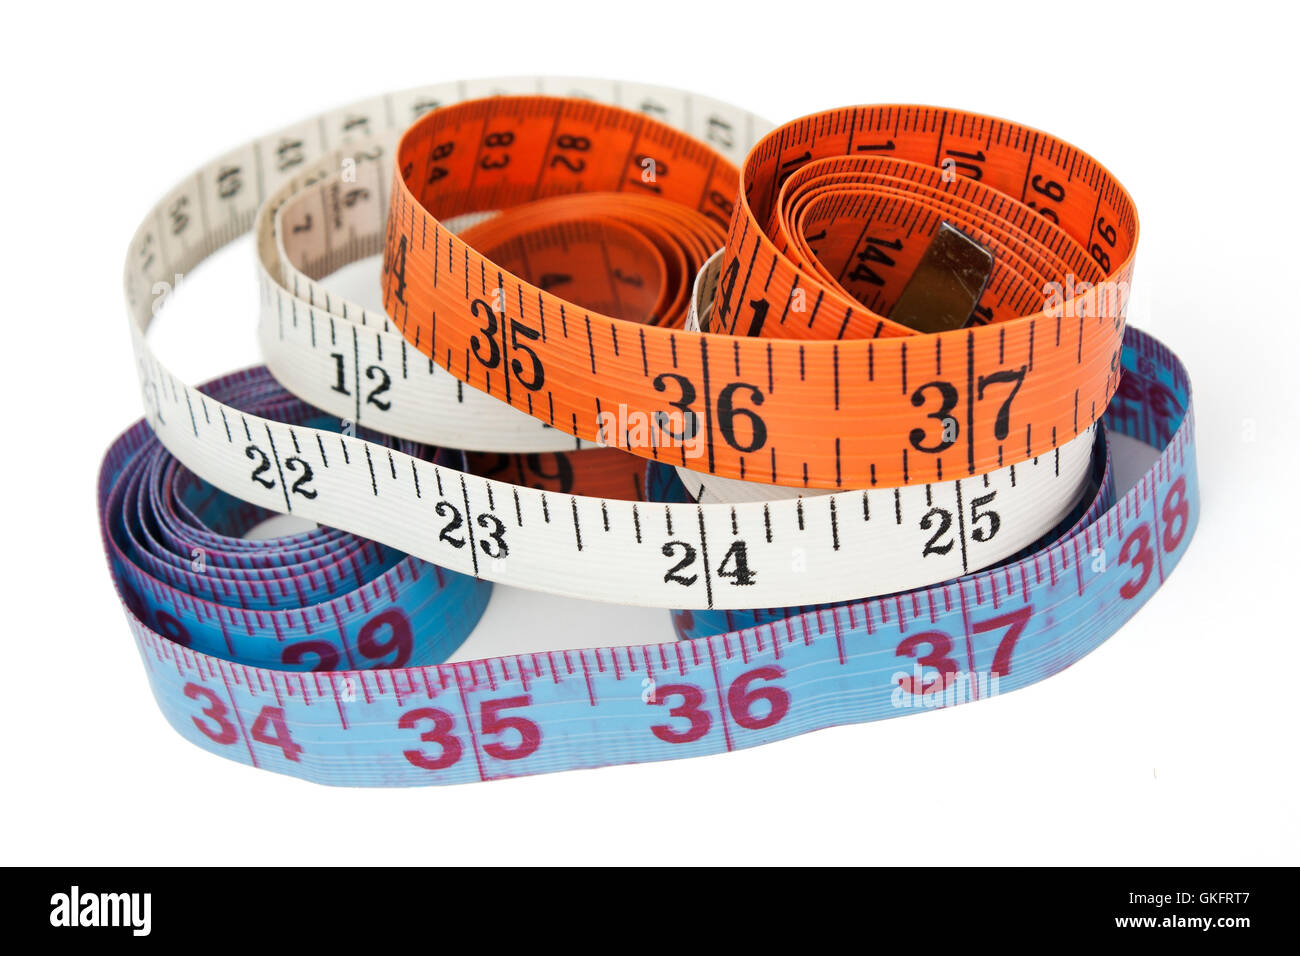 measurement of chest waist and hips - Stock Image